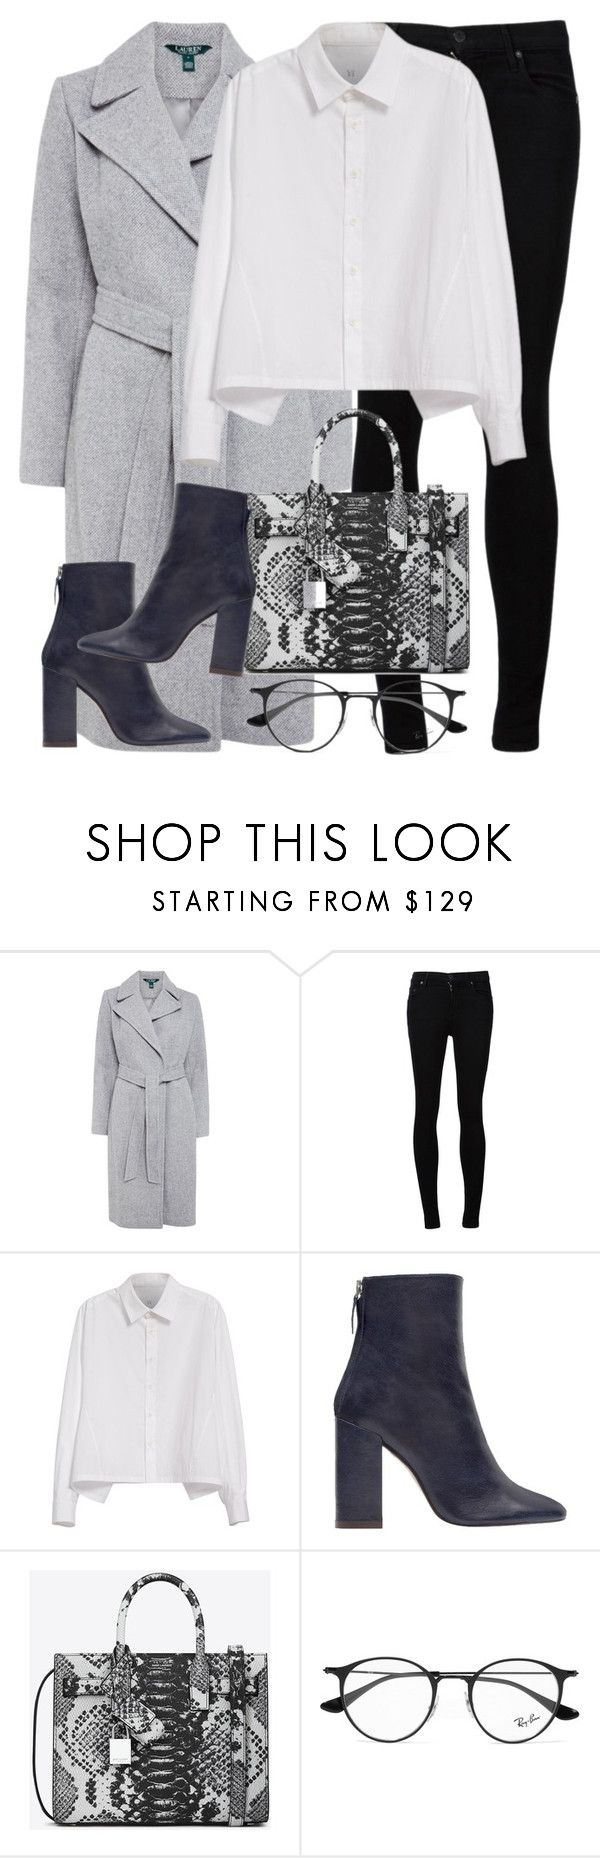 """""""Untitled #2966"""" by elenaday on Polyvore featuring Lauren Ralph Lauren, Citizens of Humanity, Y's by Yohji Yamamoto, Zara, Yves Saint Laurent and Ray-Ban"""